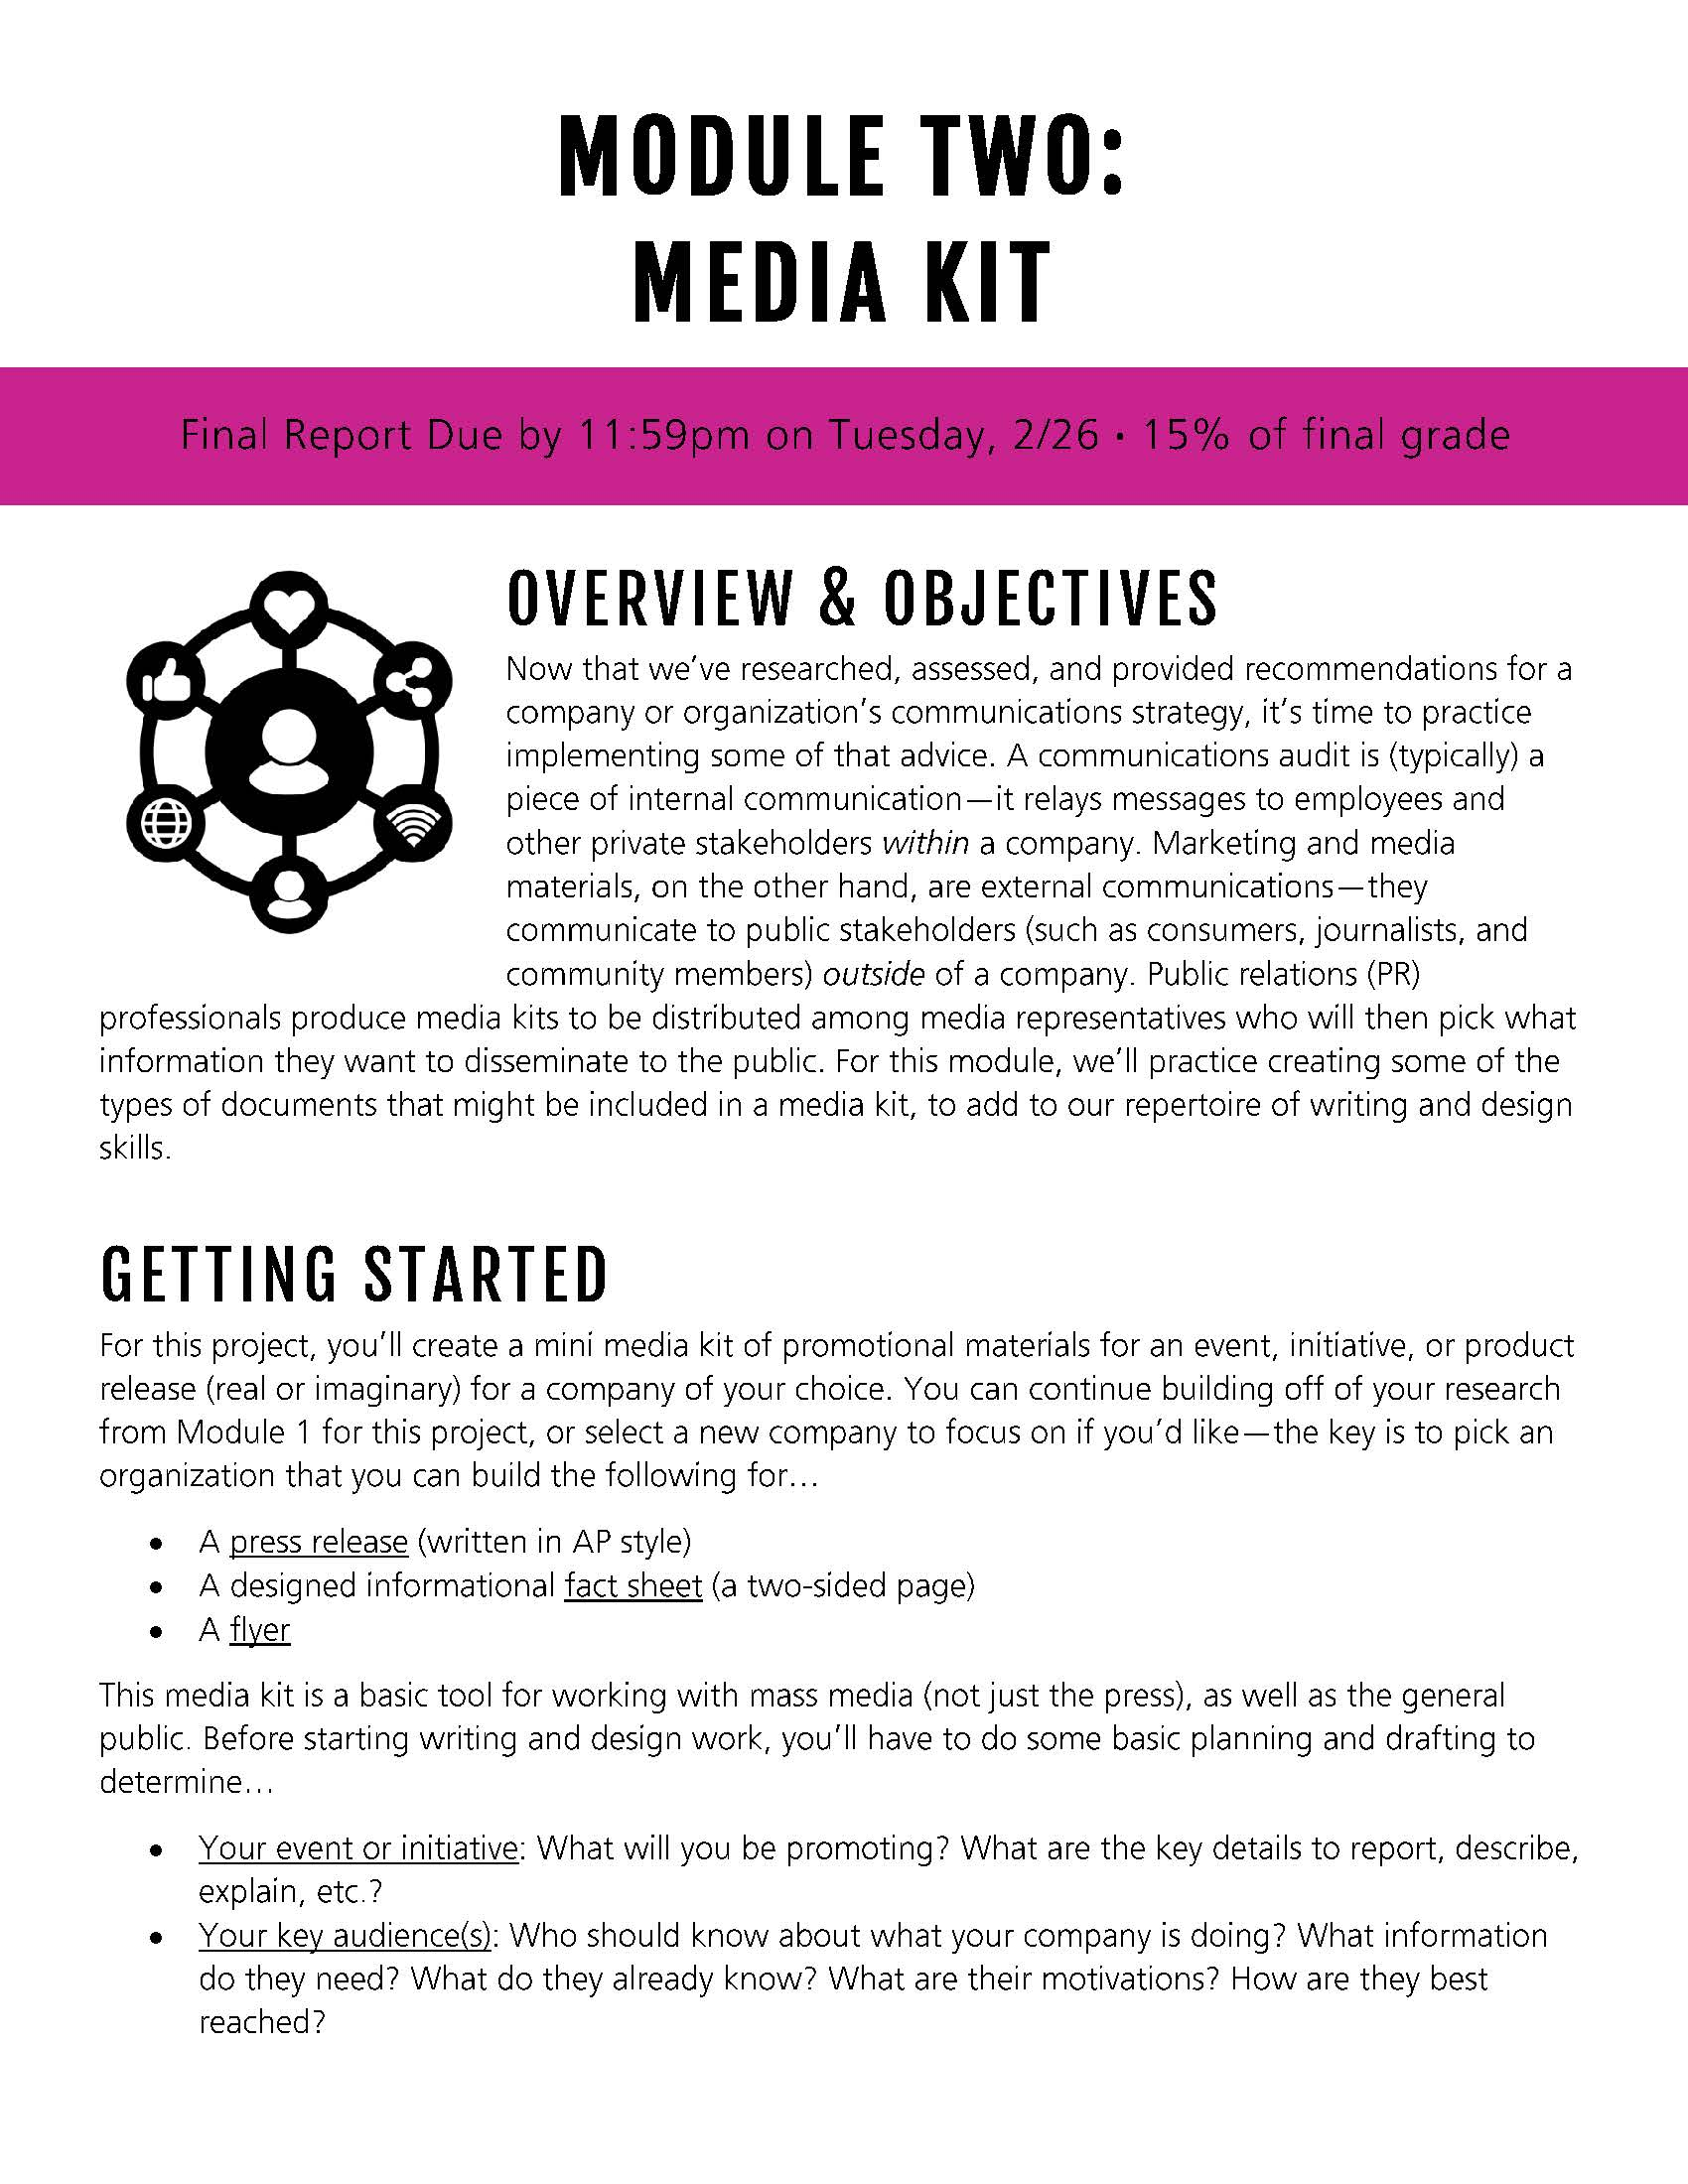 """The first page of the """"Media Kit"""" module from ENGL 306, Introduction to Professional Writing"""